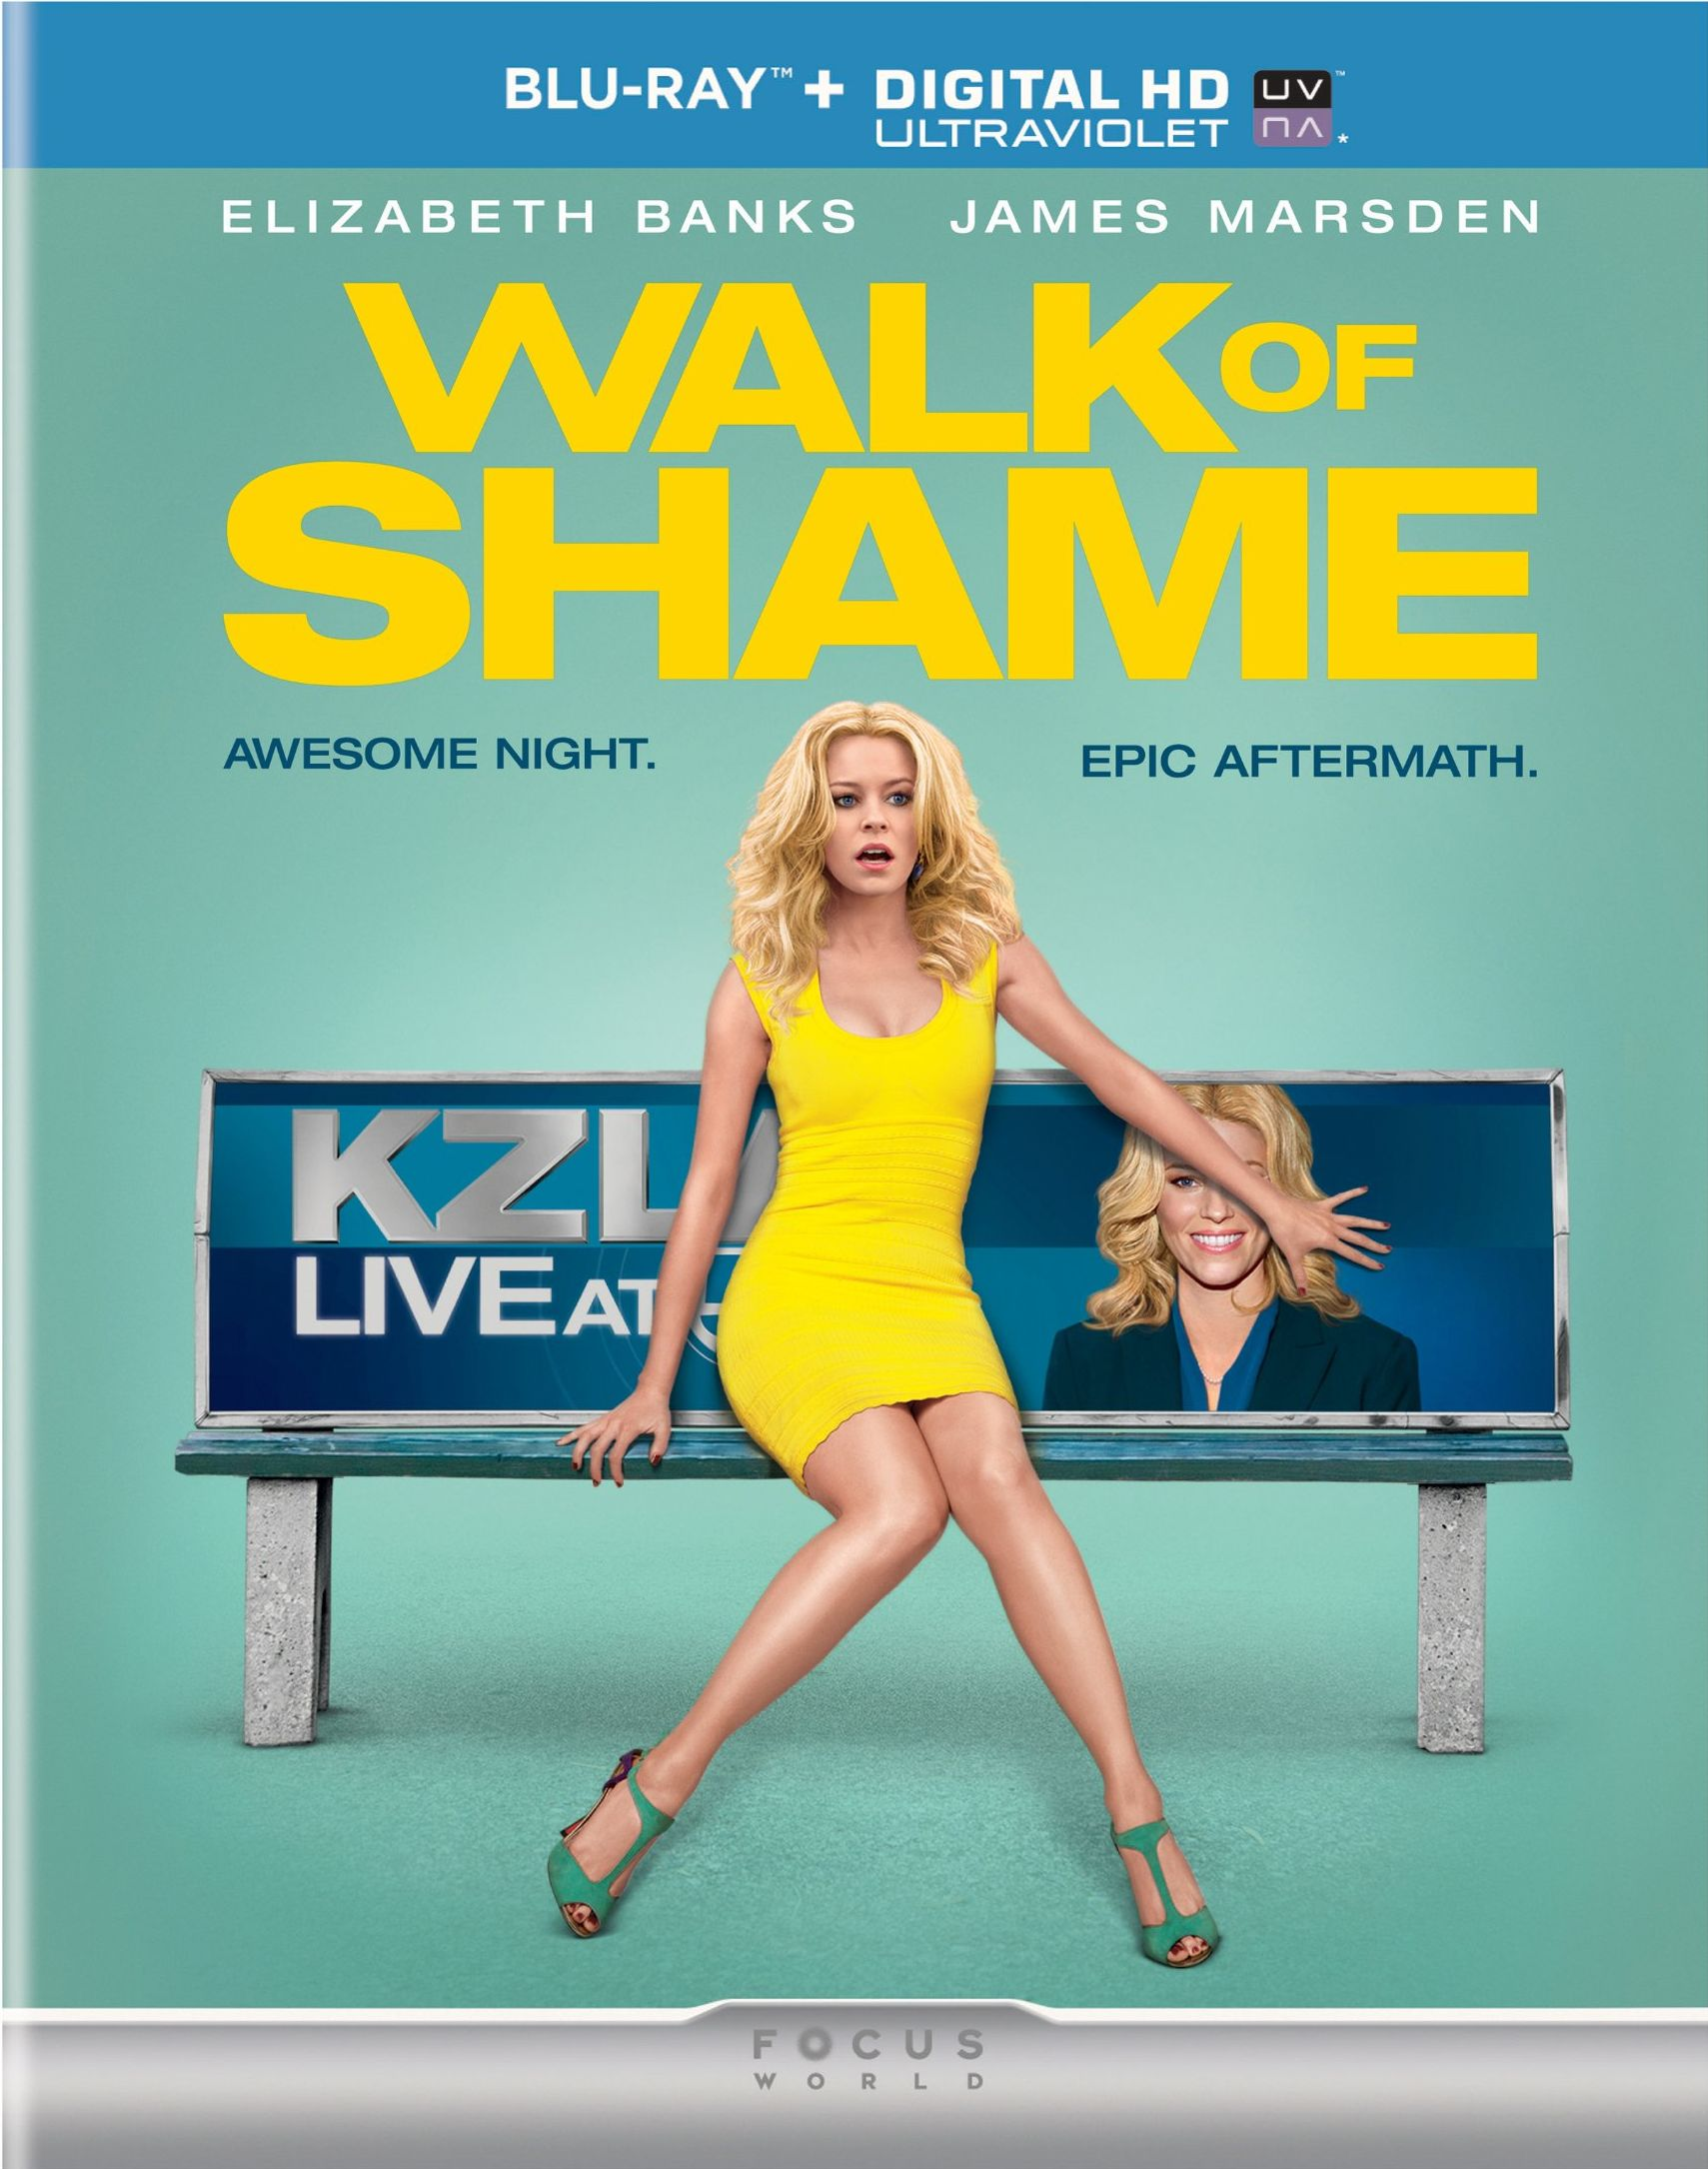 walk-of-shame Blu-ray